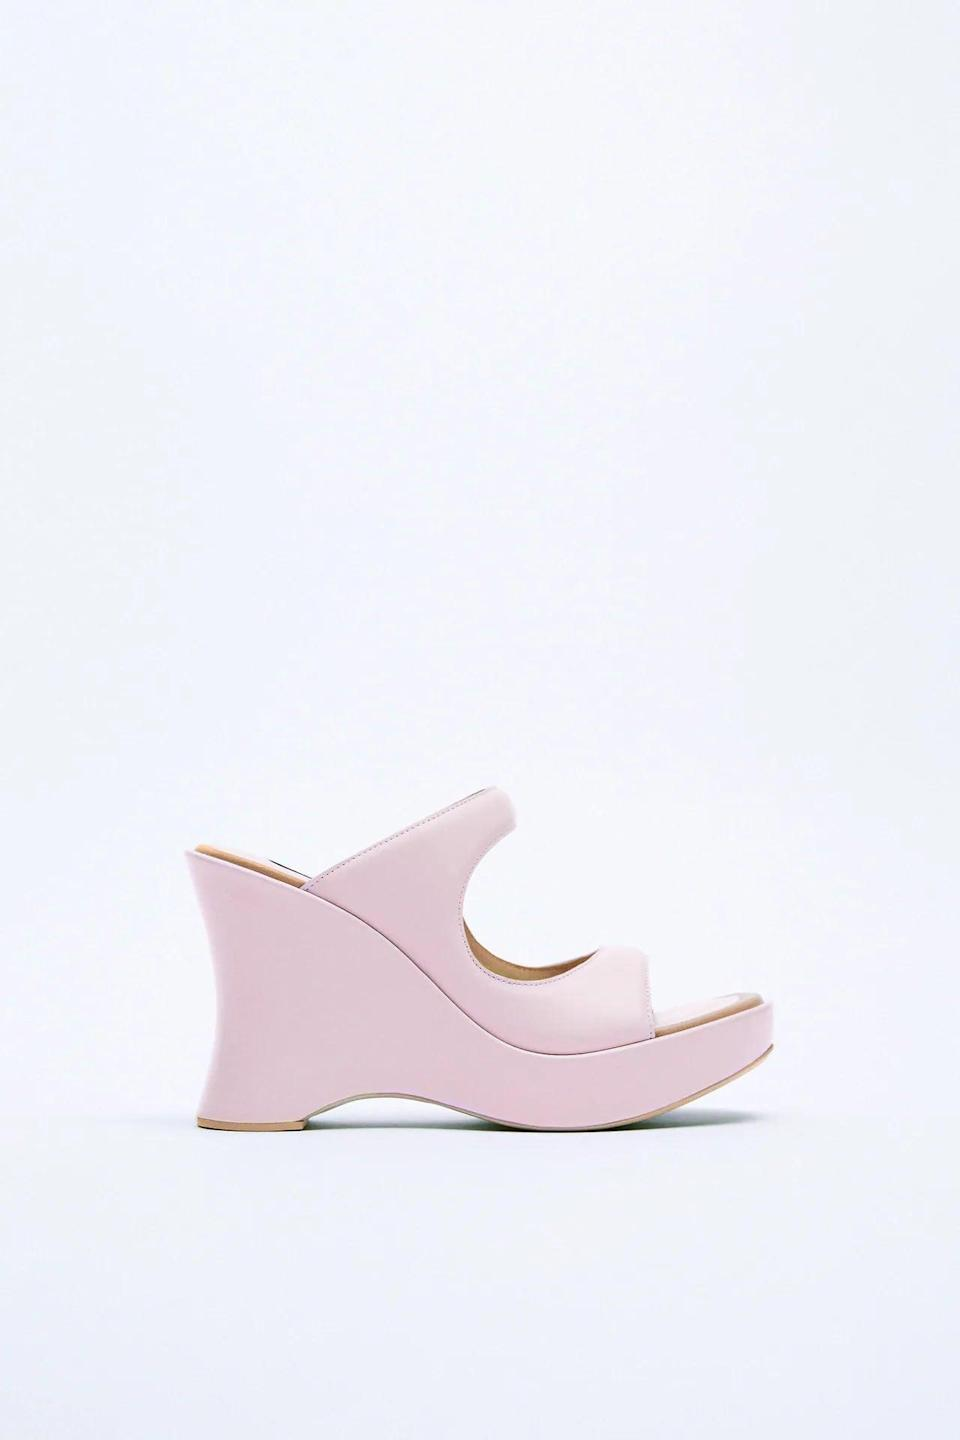 <p>These <span>Zara Round Toe Leather Heeled Wedges</span> ($169) are so futuristic and fun. The pink makes a statement.</p>